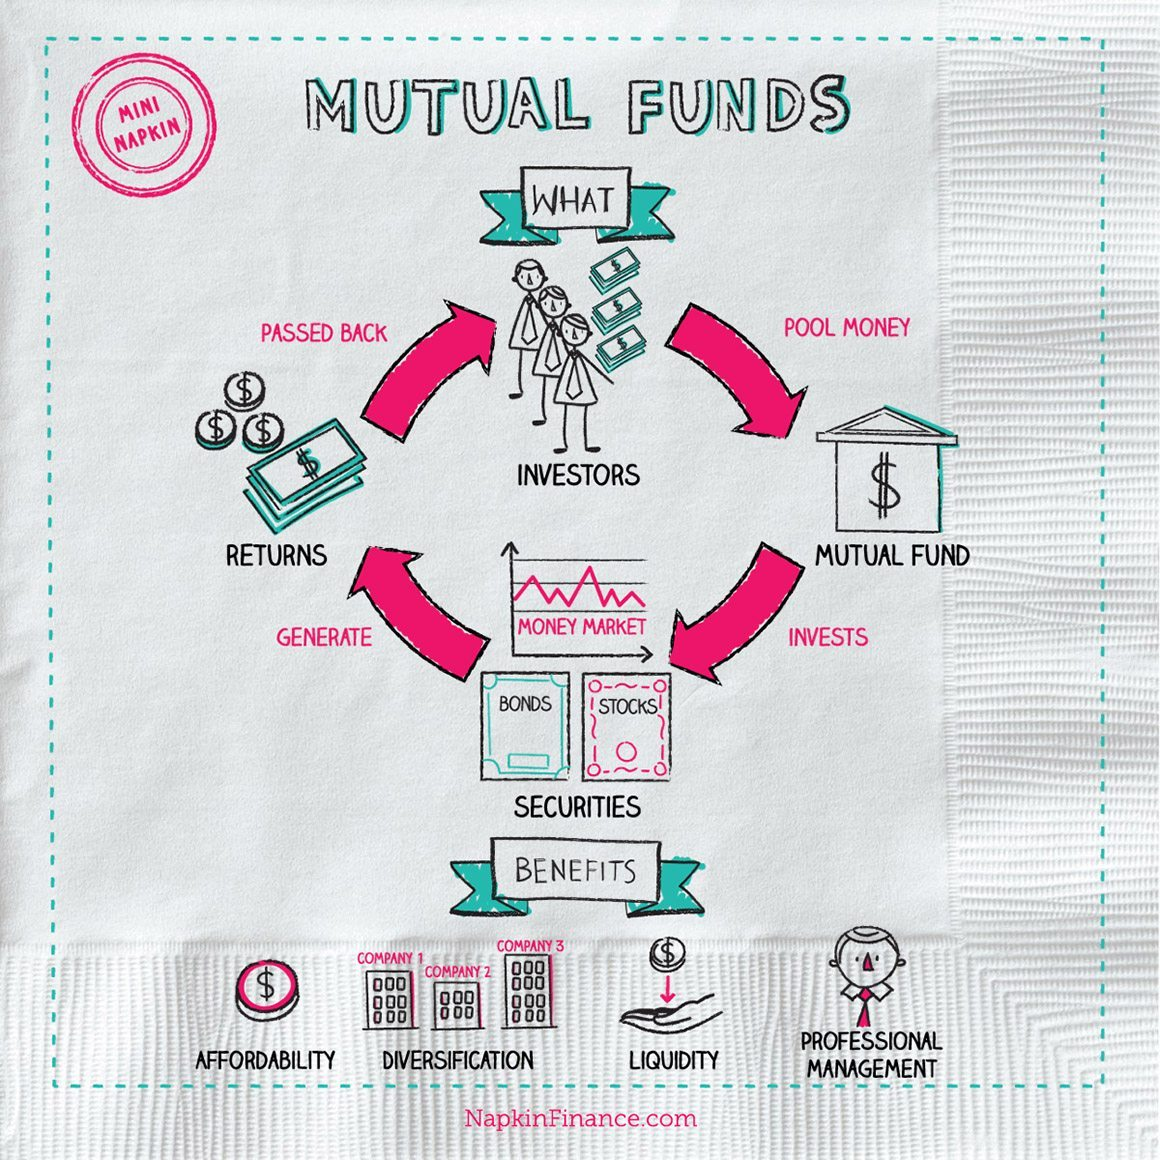 what are mutual funds Mutual funds pool money from many investors to buy securities funds are managed by professional portfolio managers, and allow you to diversify your portfolio by investing in domestic and international stocks, bonds, real estate and money market instruments, as well as many combinations of these assets.